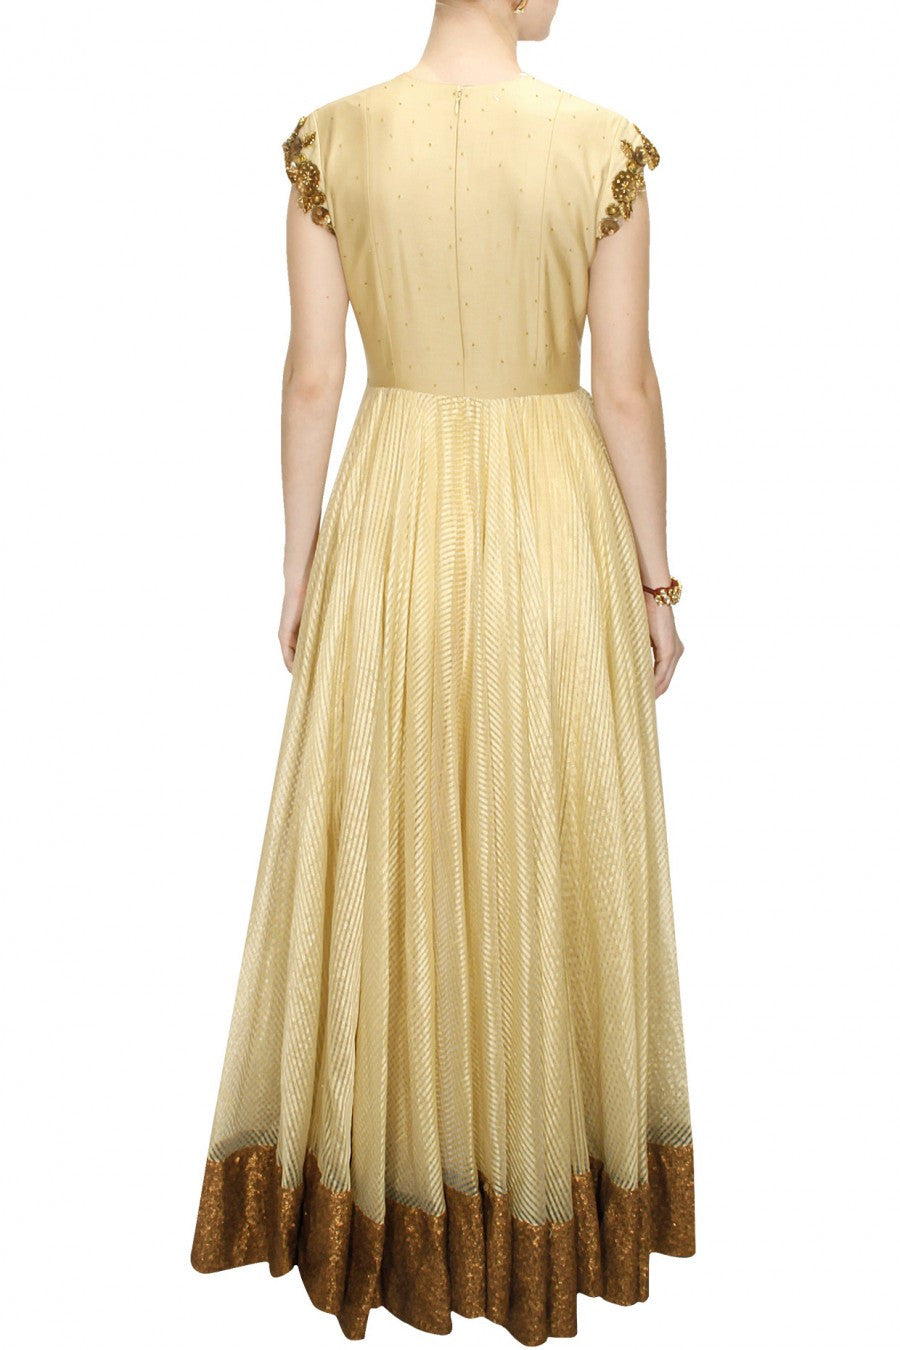 Offwhite Anarkali suit